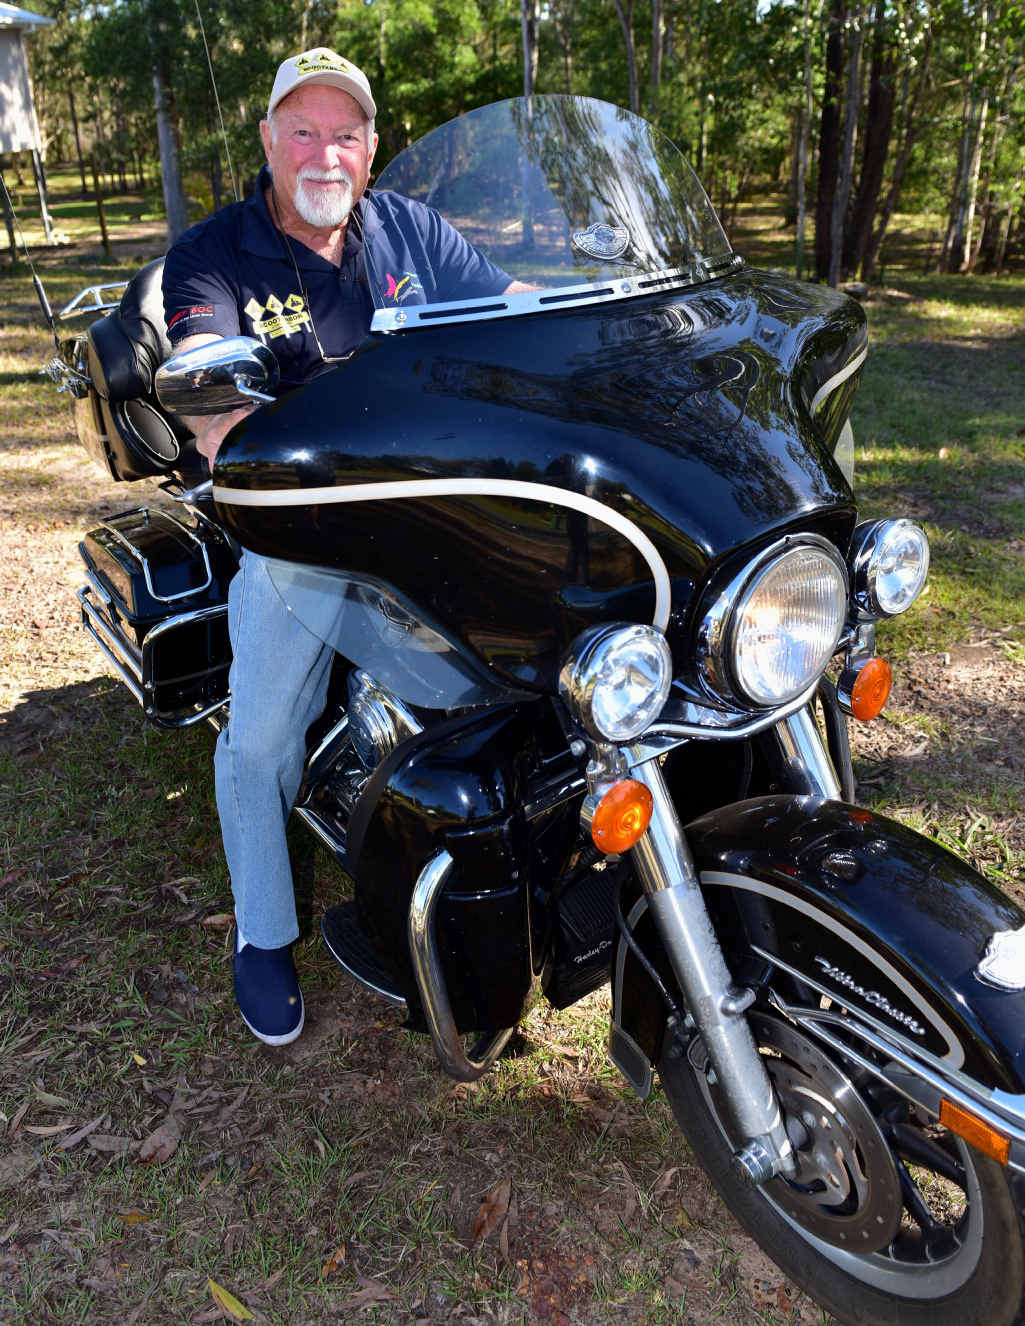 COMEDOWN IN POWER: David Marr of Noosa Banks will swap his Harley-Davidson for a 50cc scooter to ride across the Nullarbor.